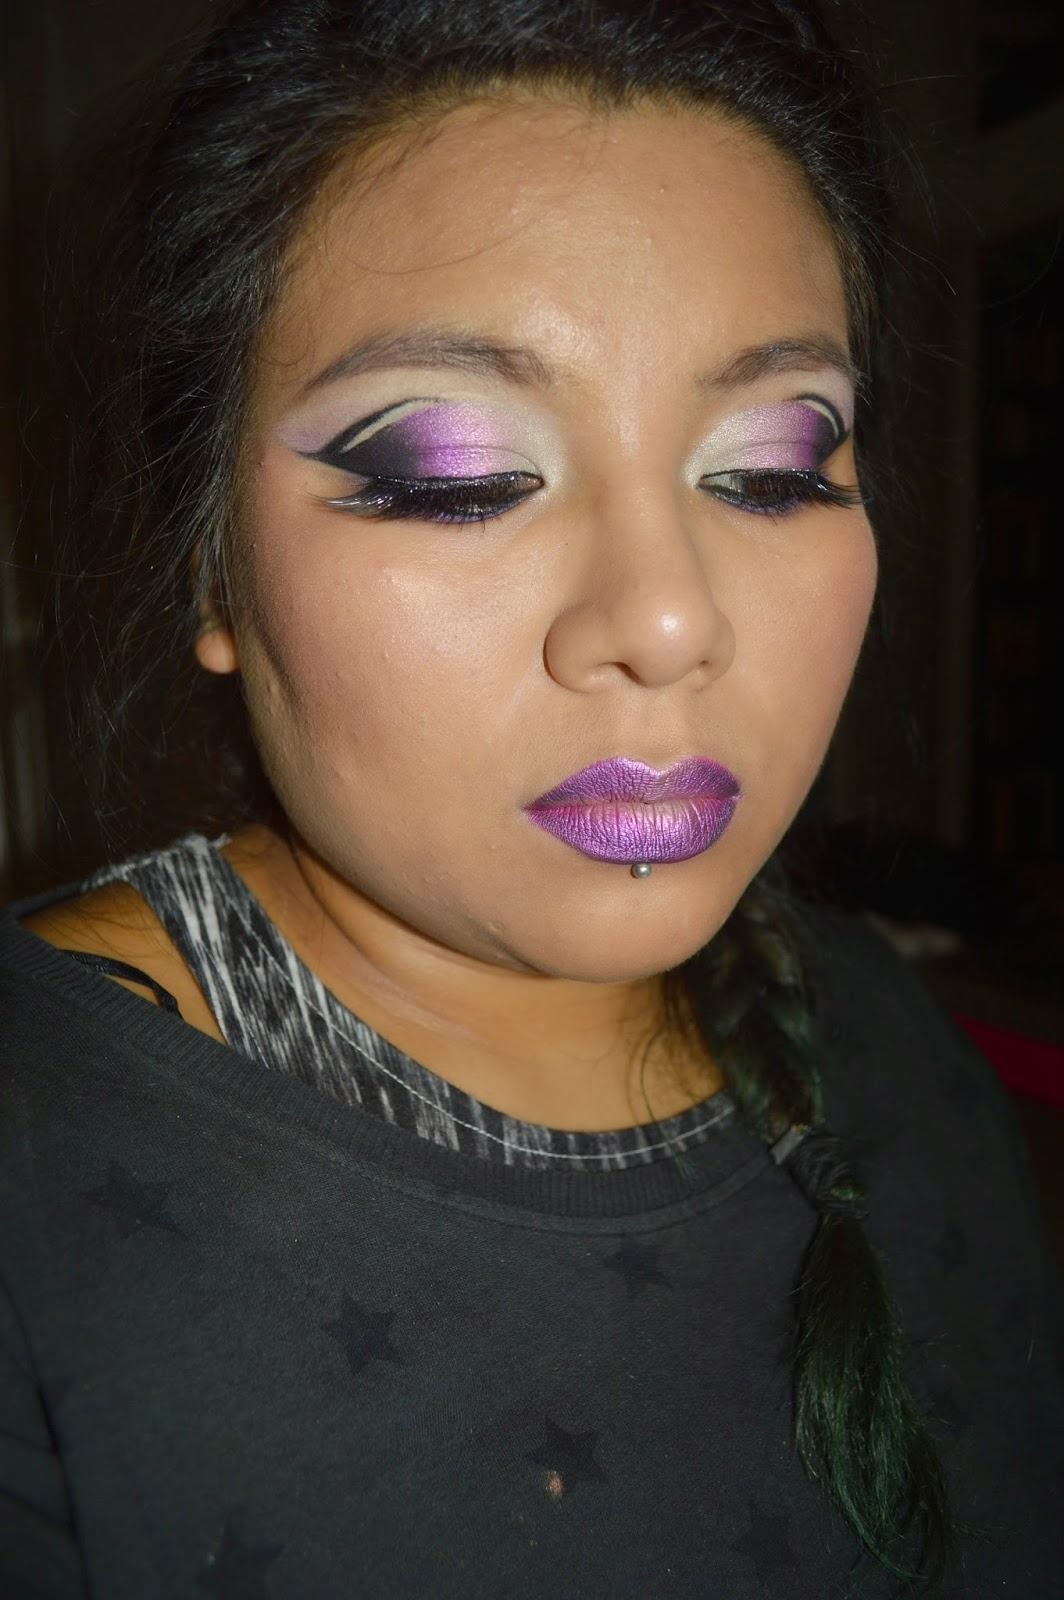 Nabla, Cattleya, Madreperla, Hot SMoked, Makeup Revolution, Cherry Diamond Lips, Kiko, Neve Cosmetics, Mua, Earth&Heaven, Essence